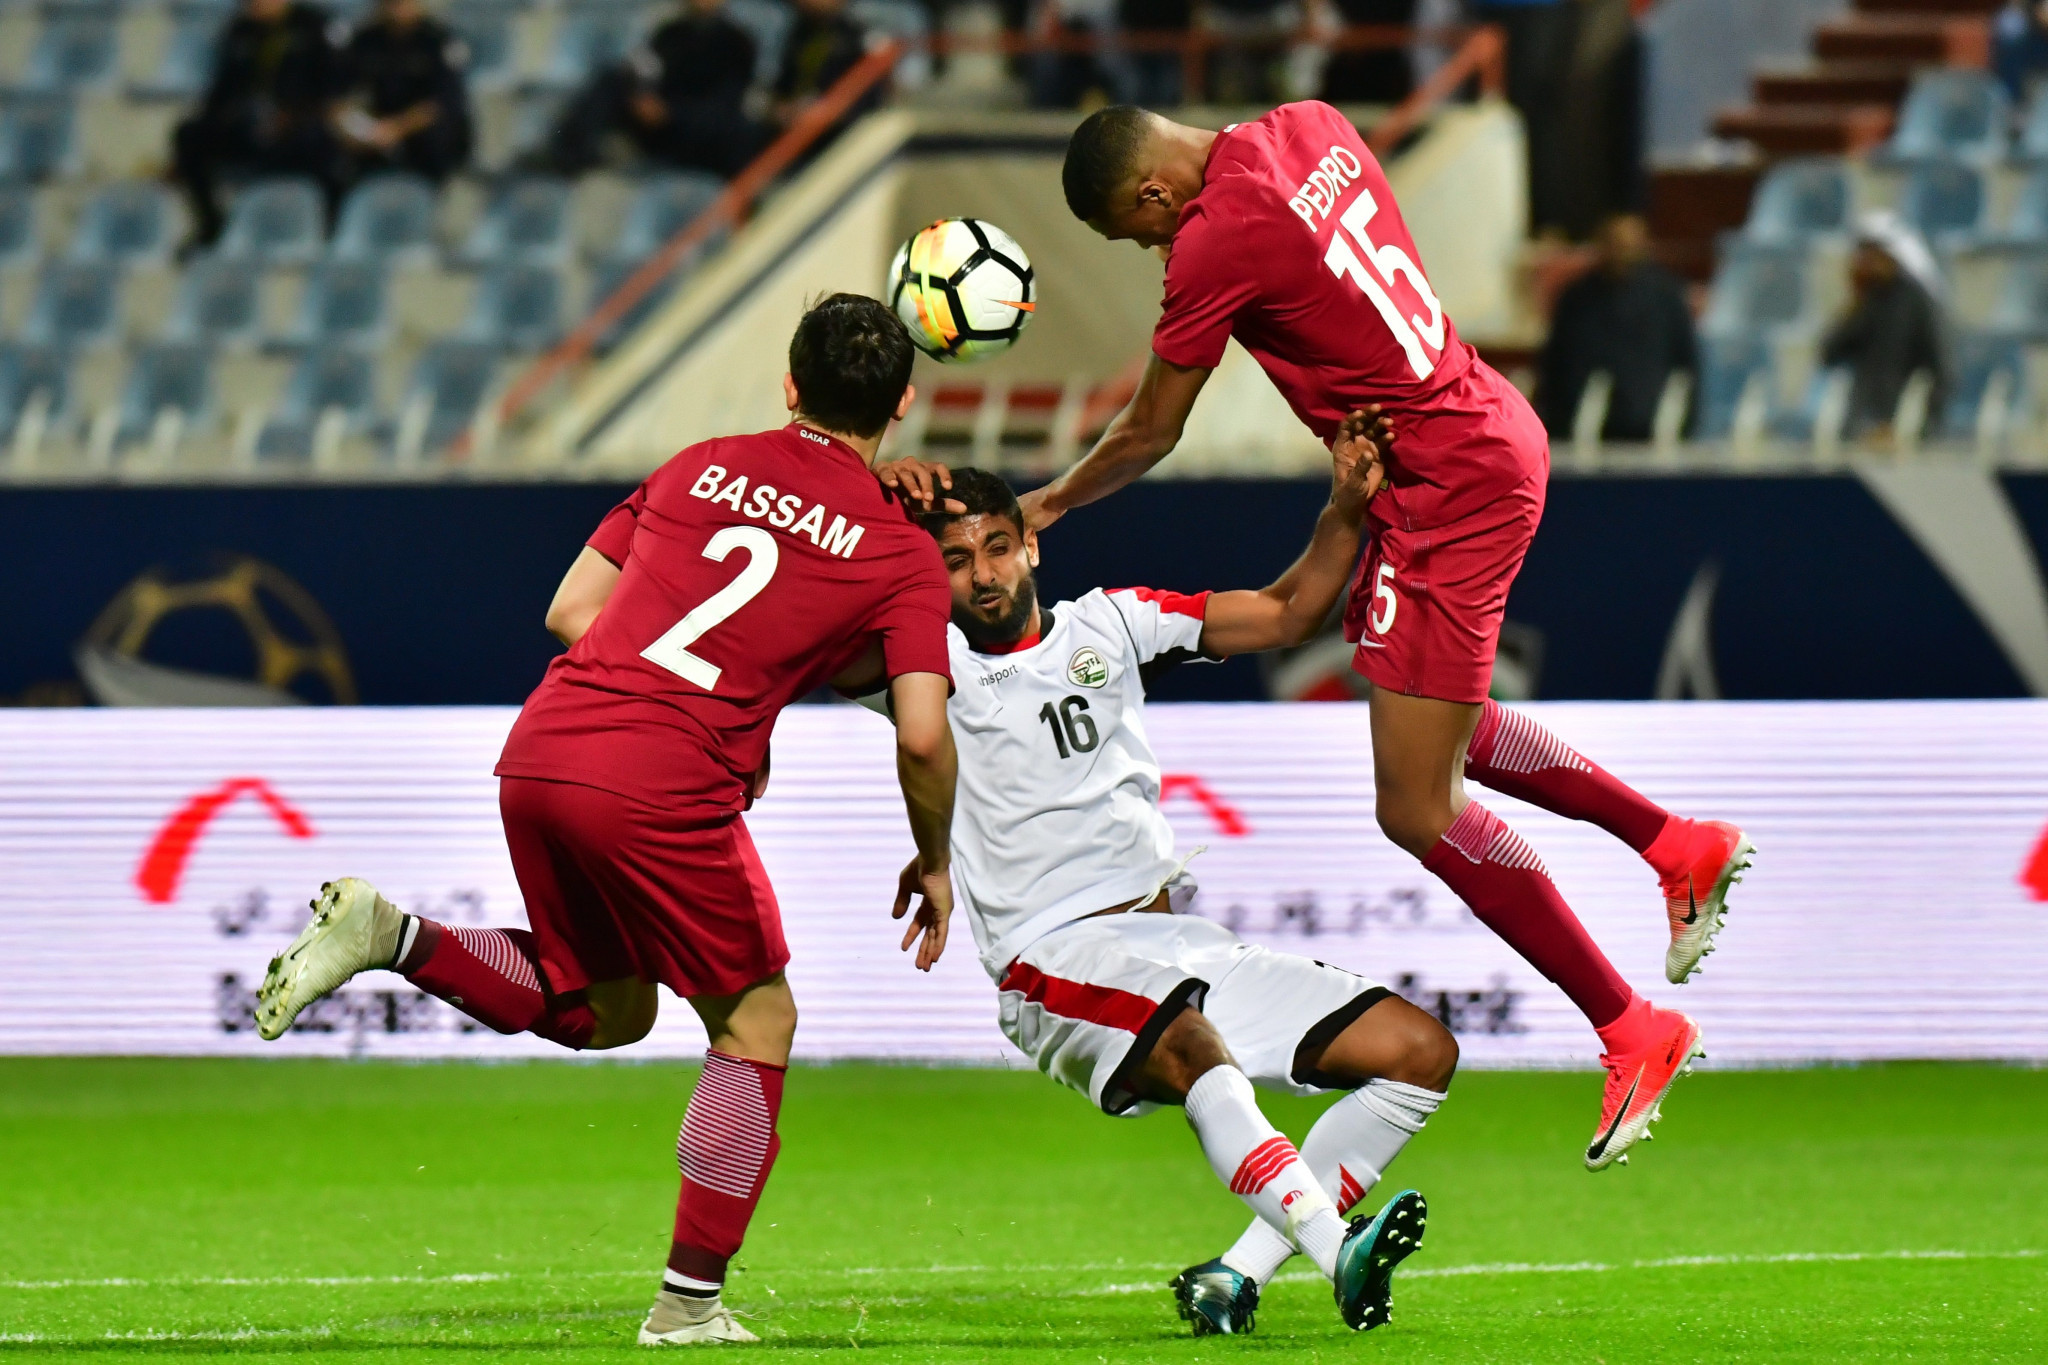 Qatar were in dominant form and scored three goals in the opening 18 minutes ©Getty Images